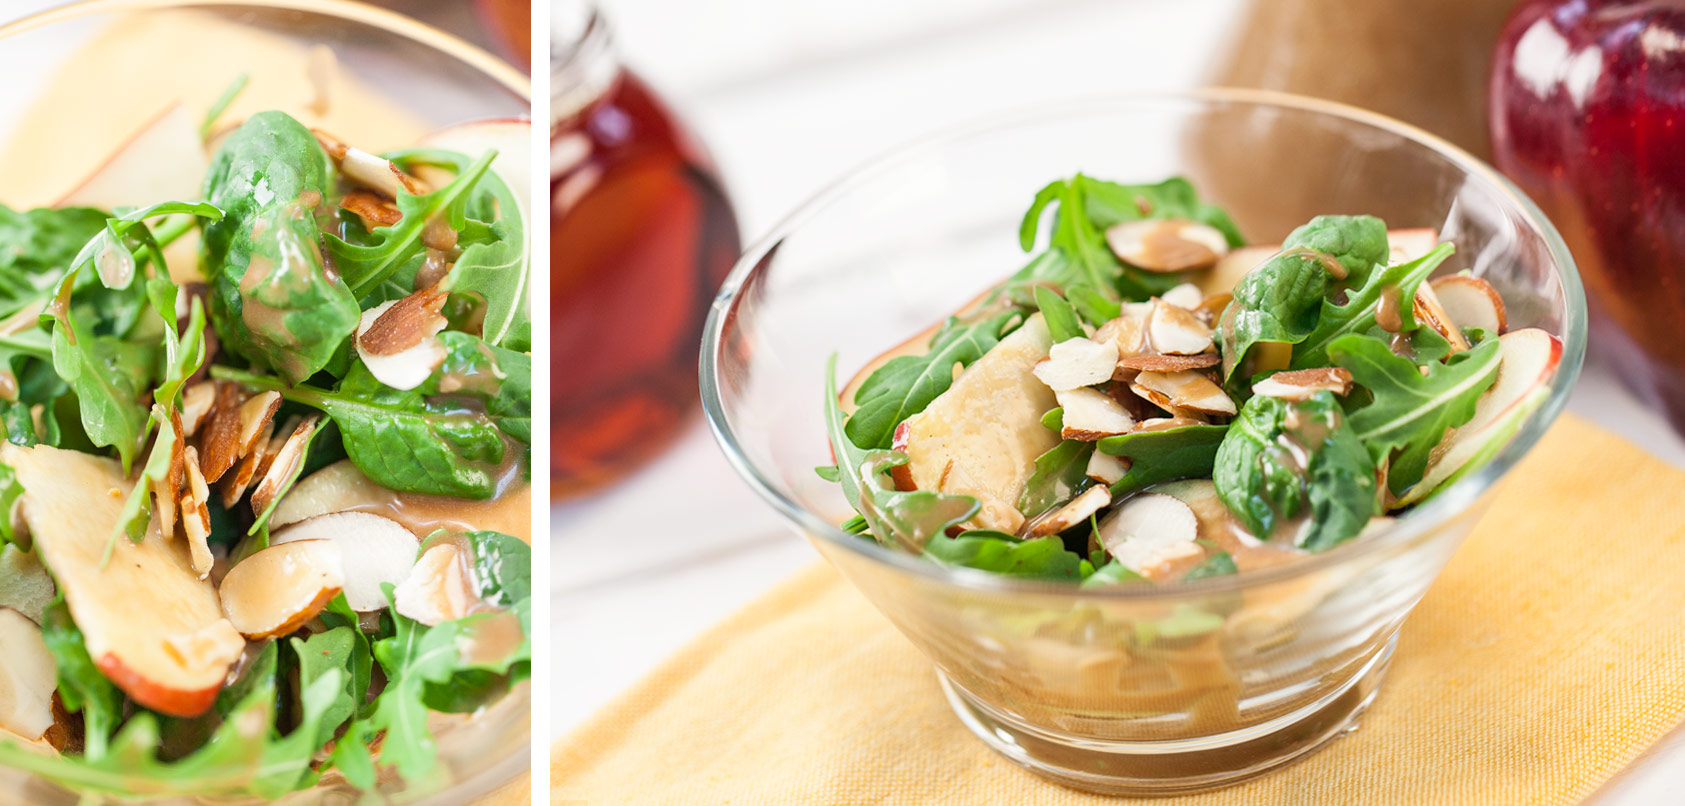 Dijon-Maple Vinaigrette Blender Recipe